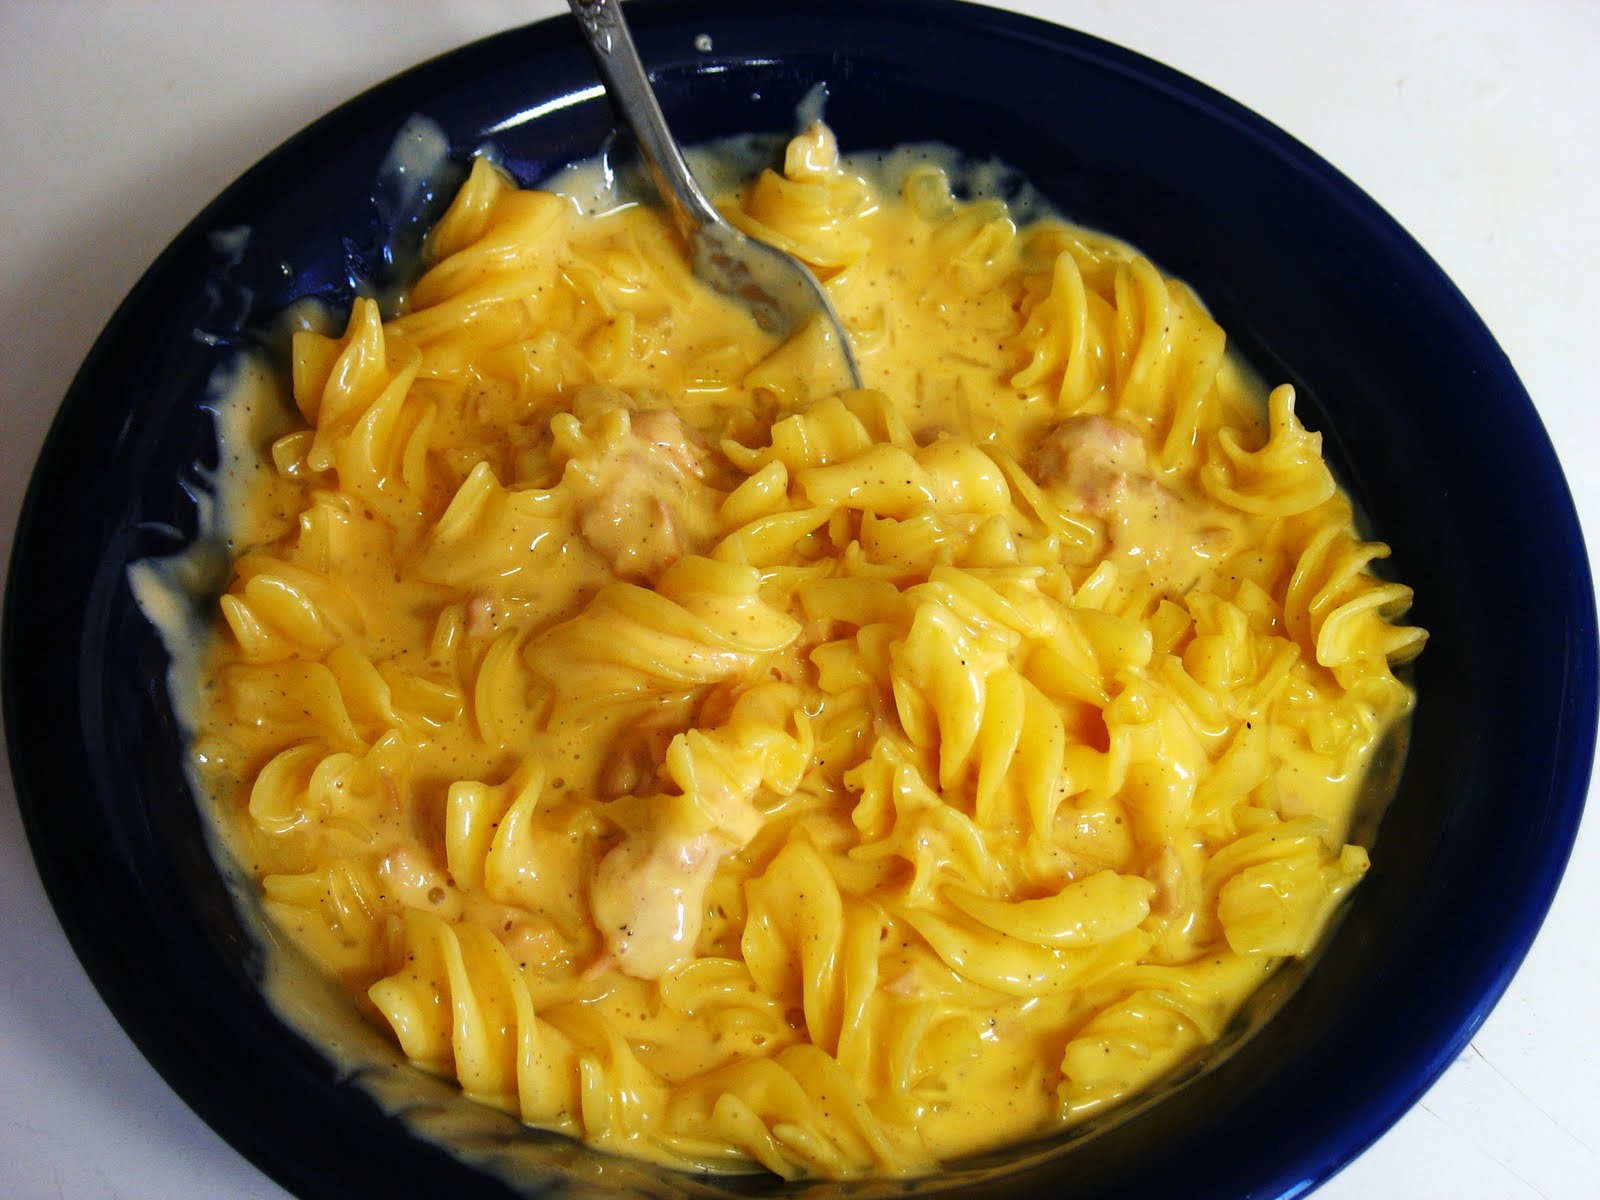 The Gluten Free Spouse: Gluten Free Tuna Macaroni and Cheese